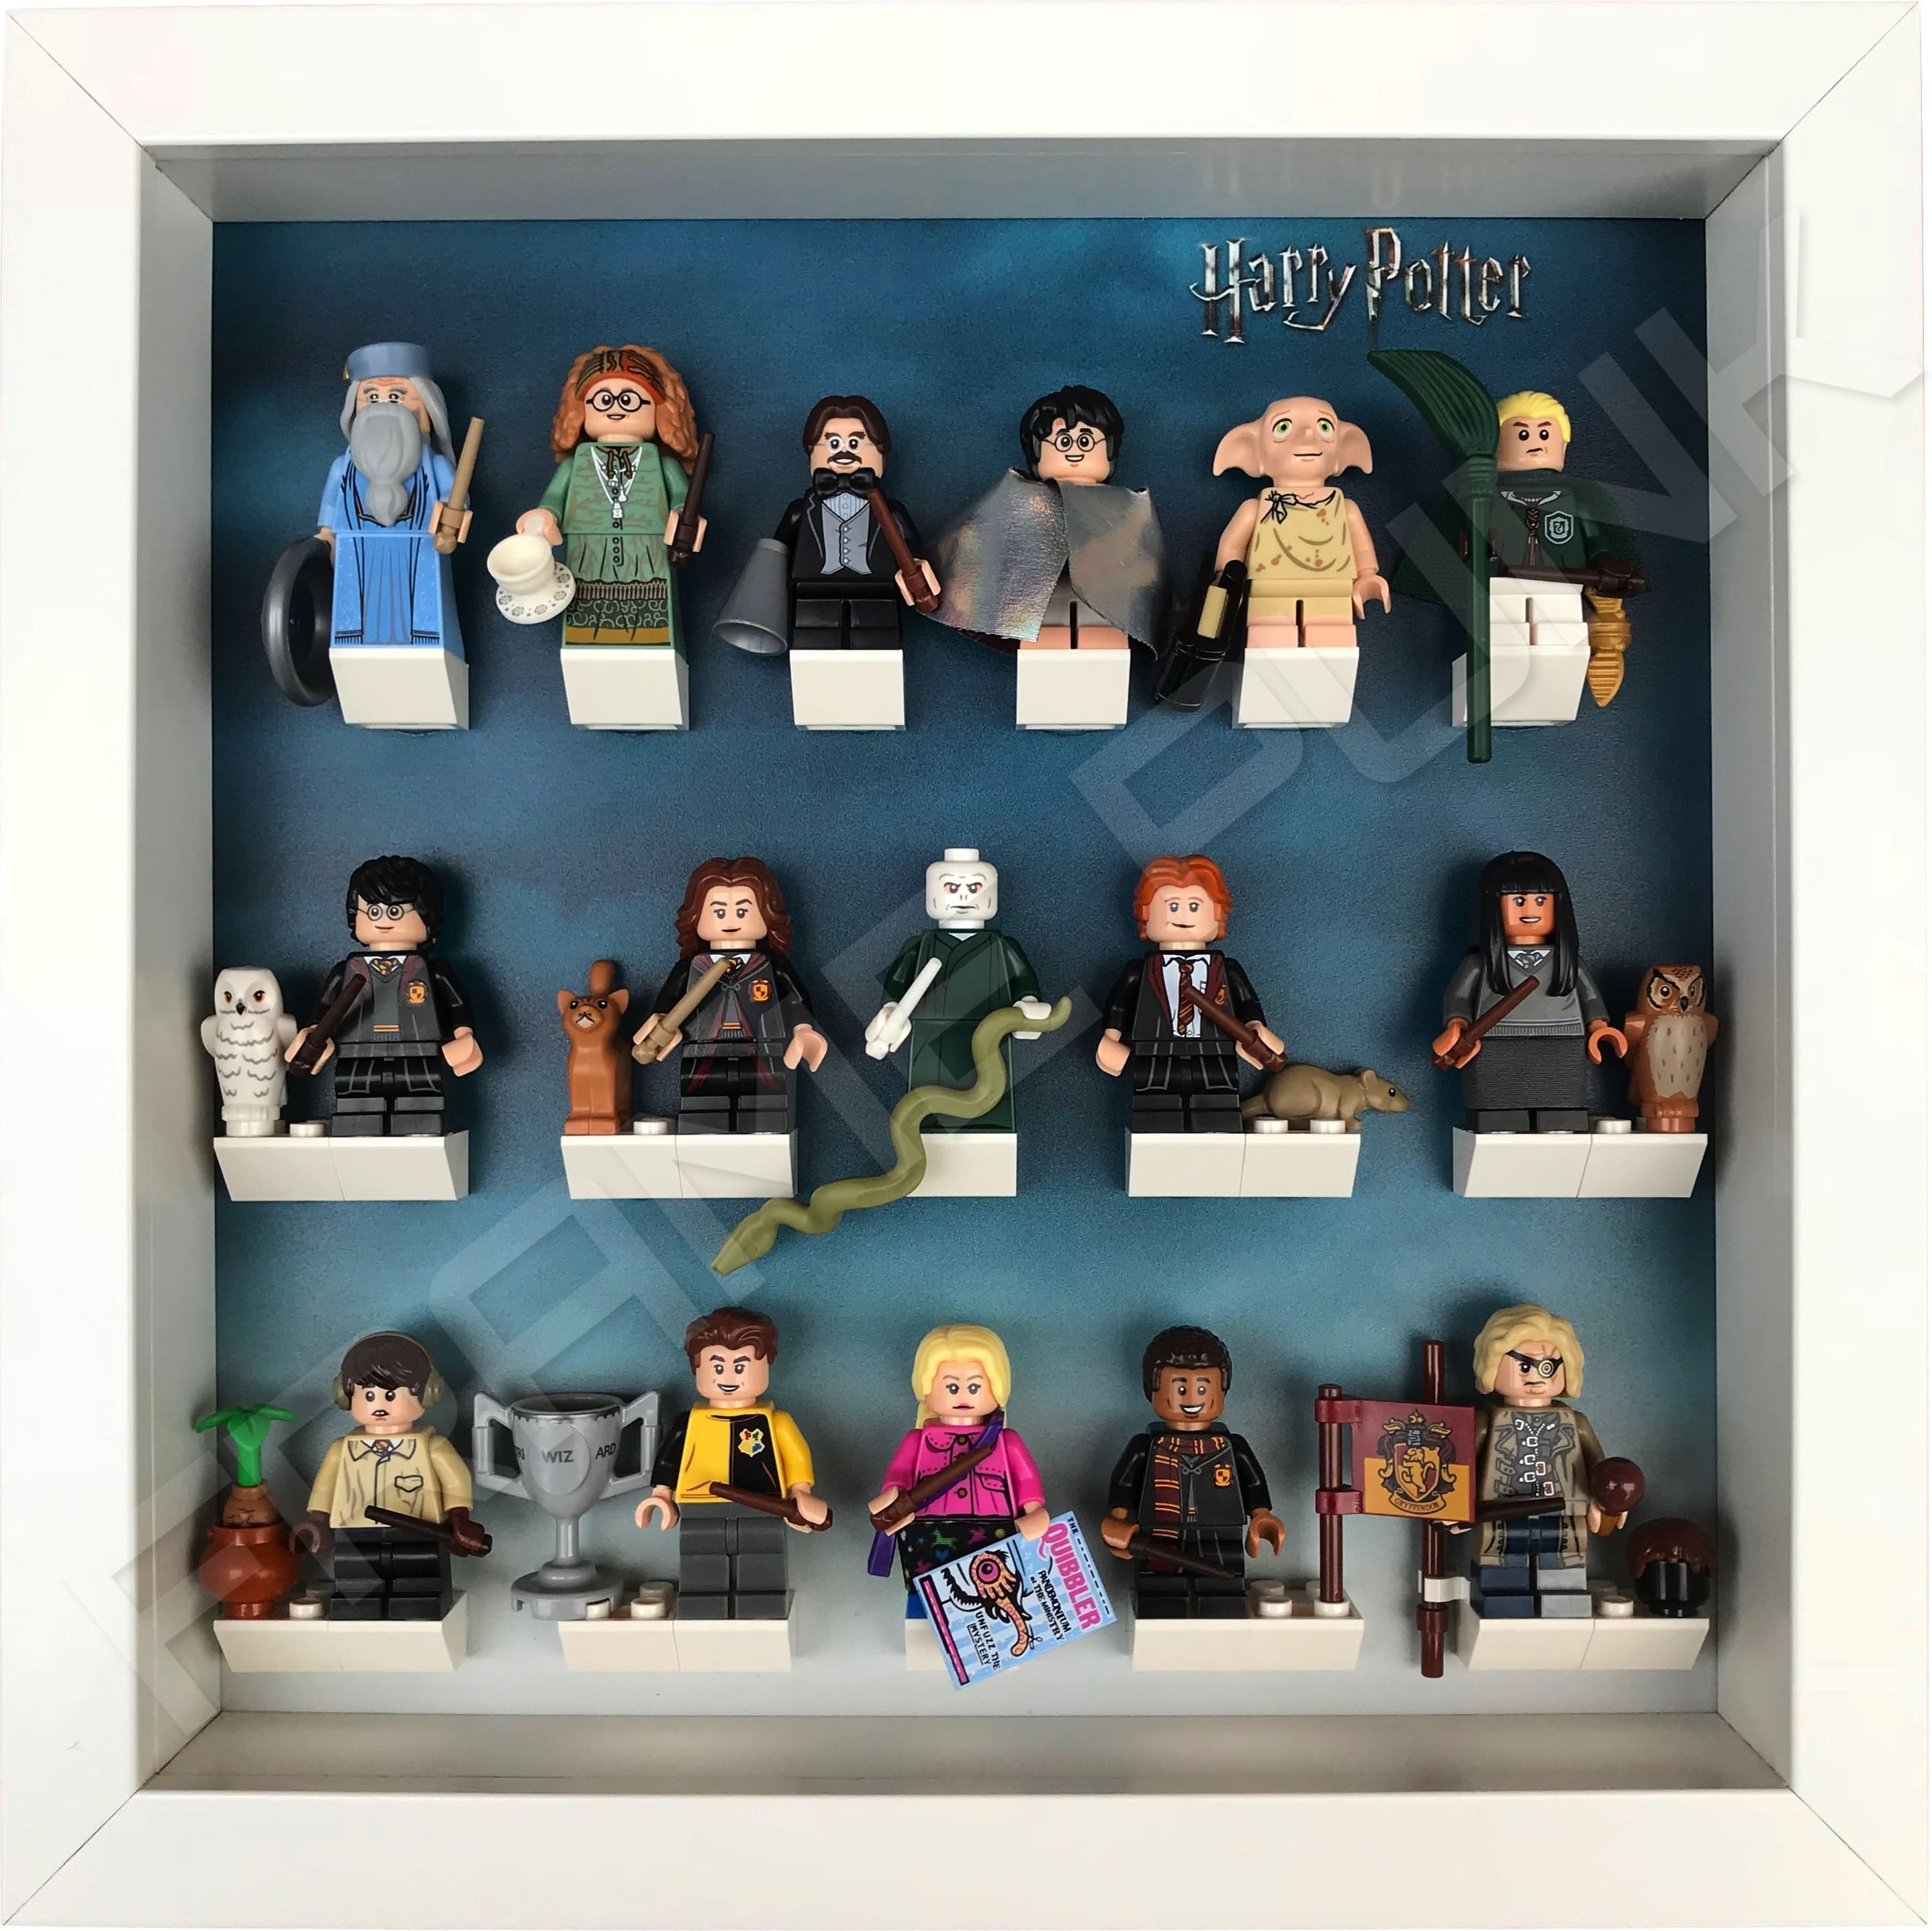 Harry Potter Lego Minifig Series Frame White Frame Punk